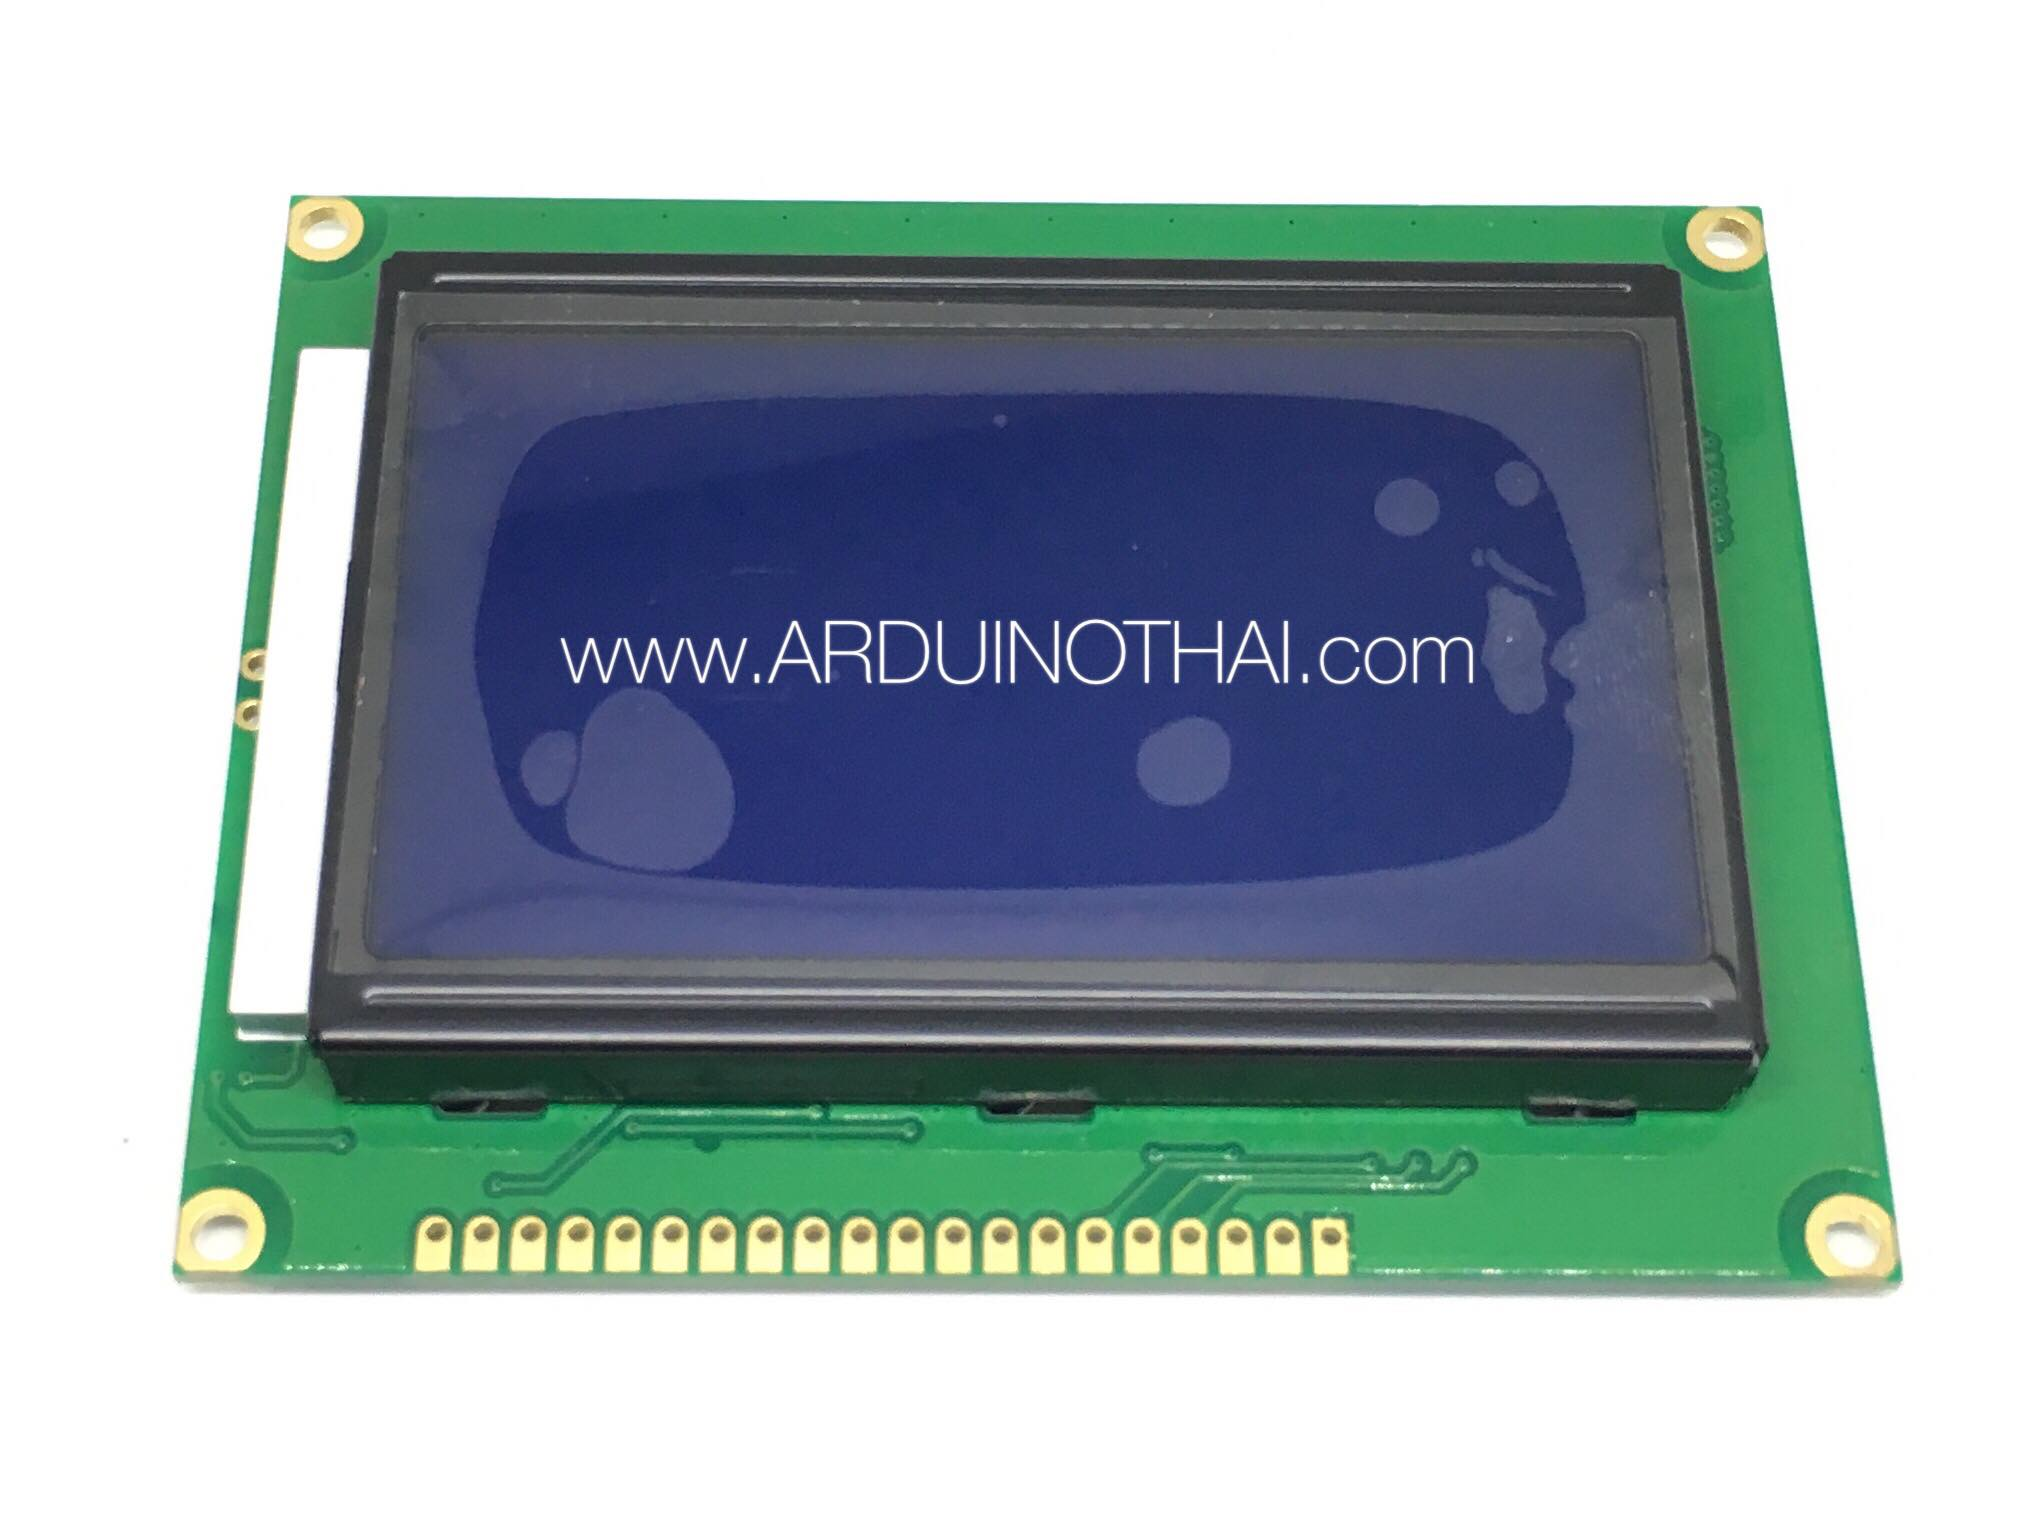 128x64 LCD Module Display (Blue Backlight)